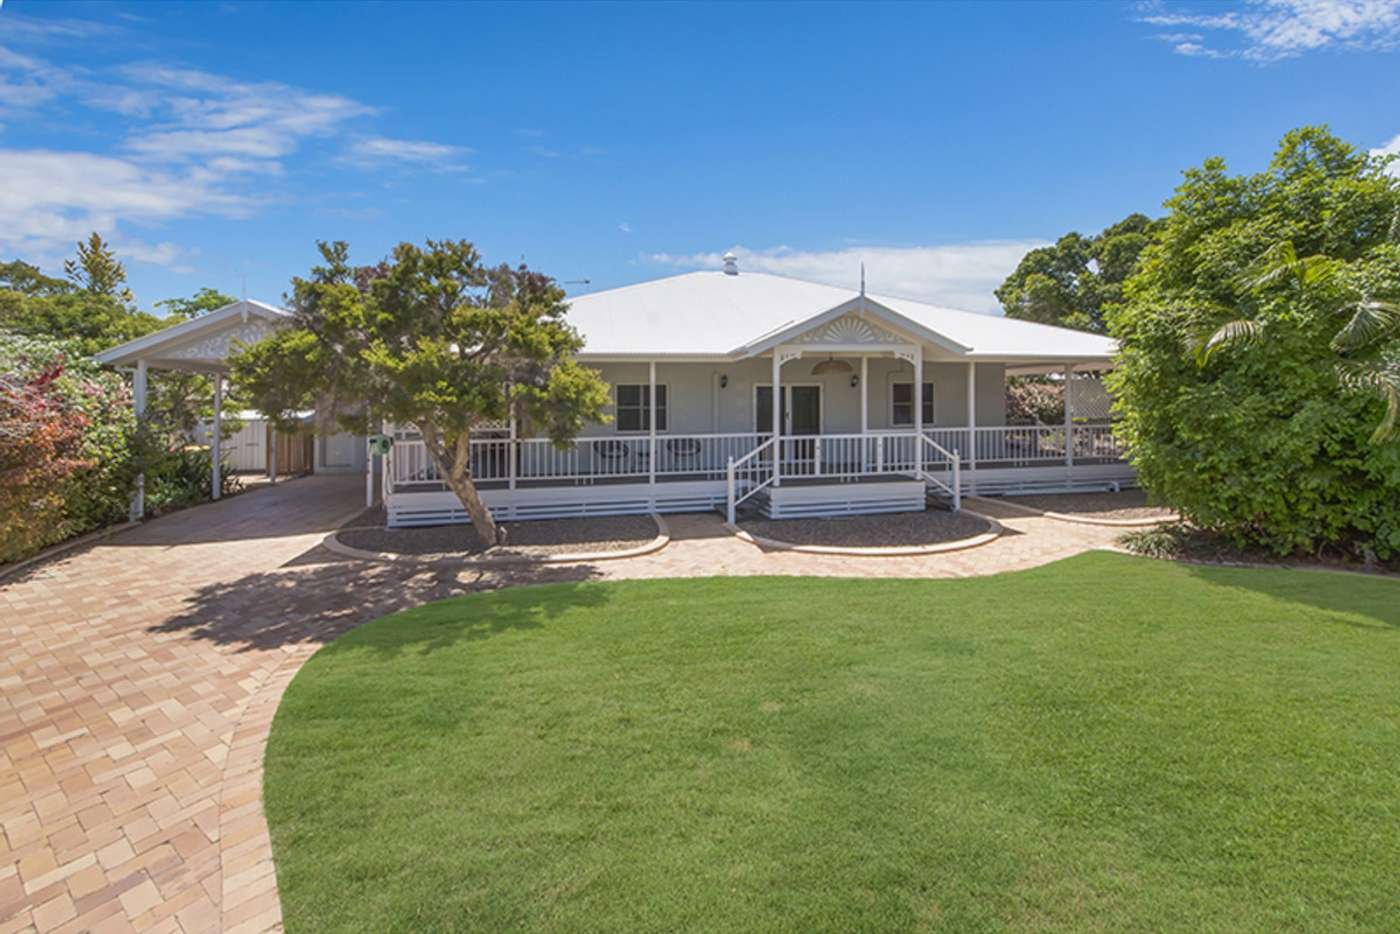 Main view of Homely house listing, 11 Perrin Court, Annandale QLD 4814